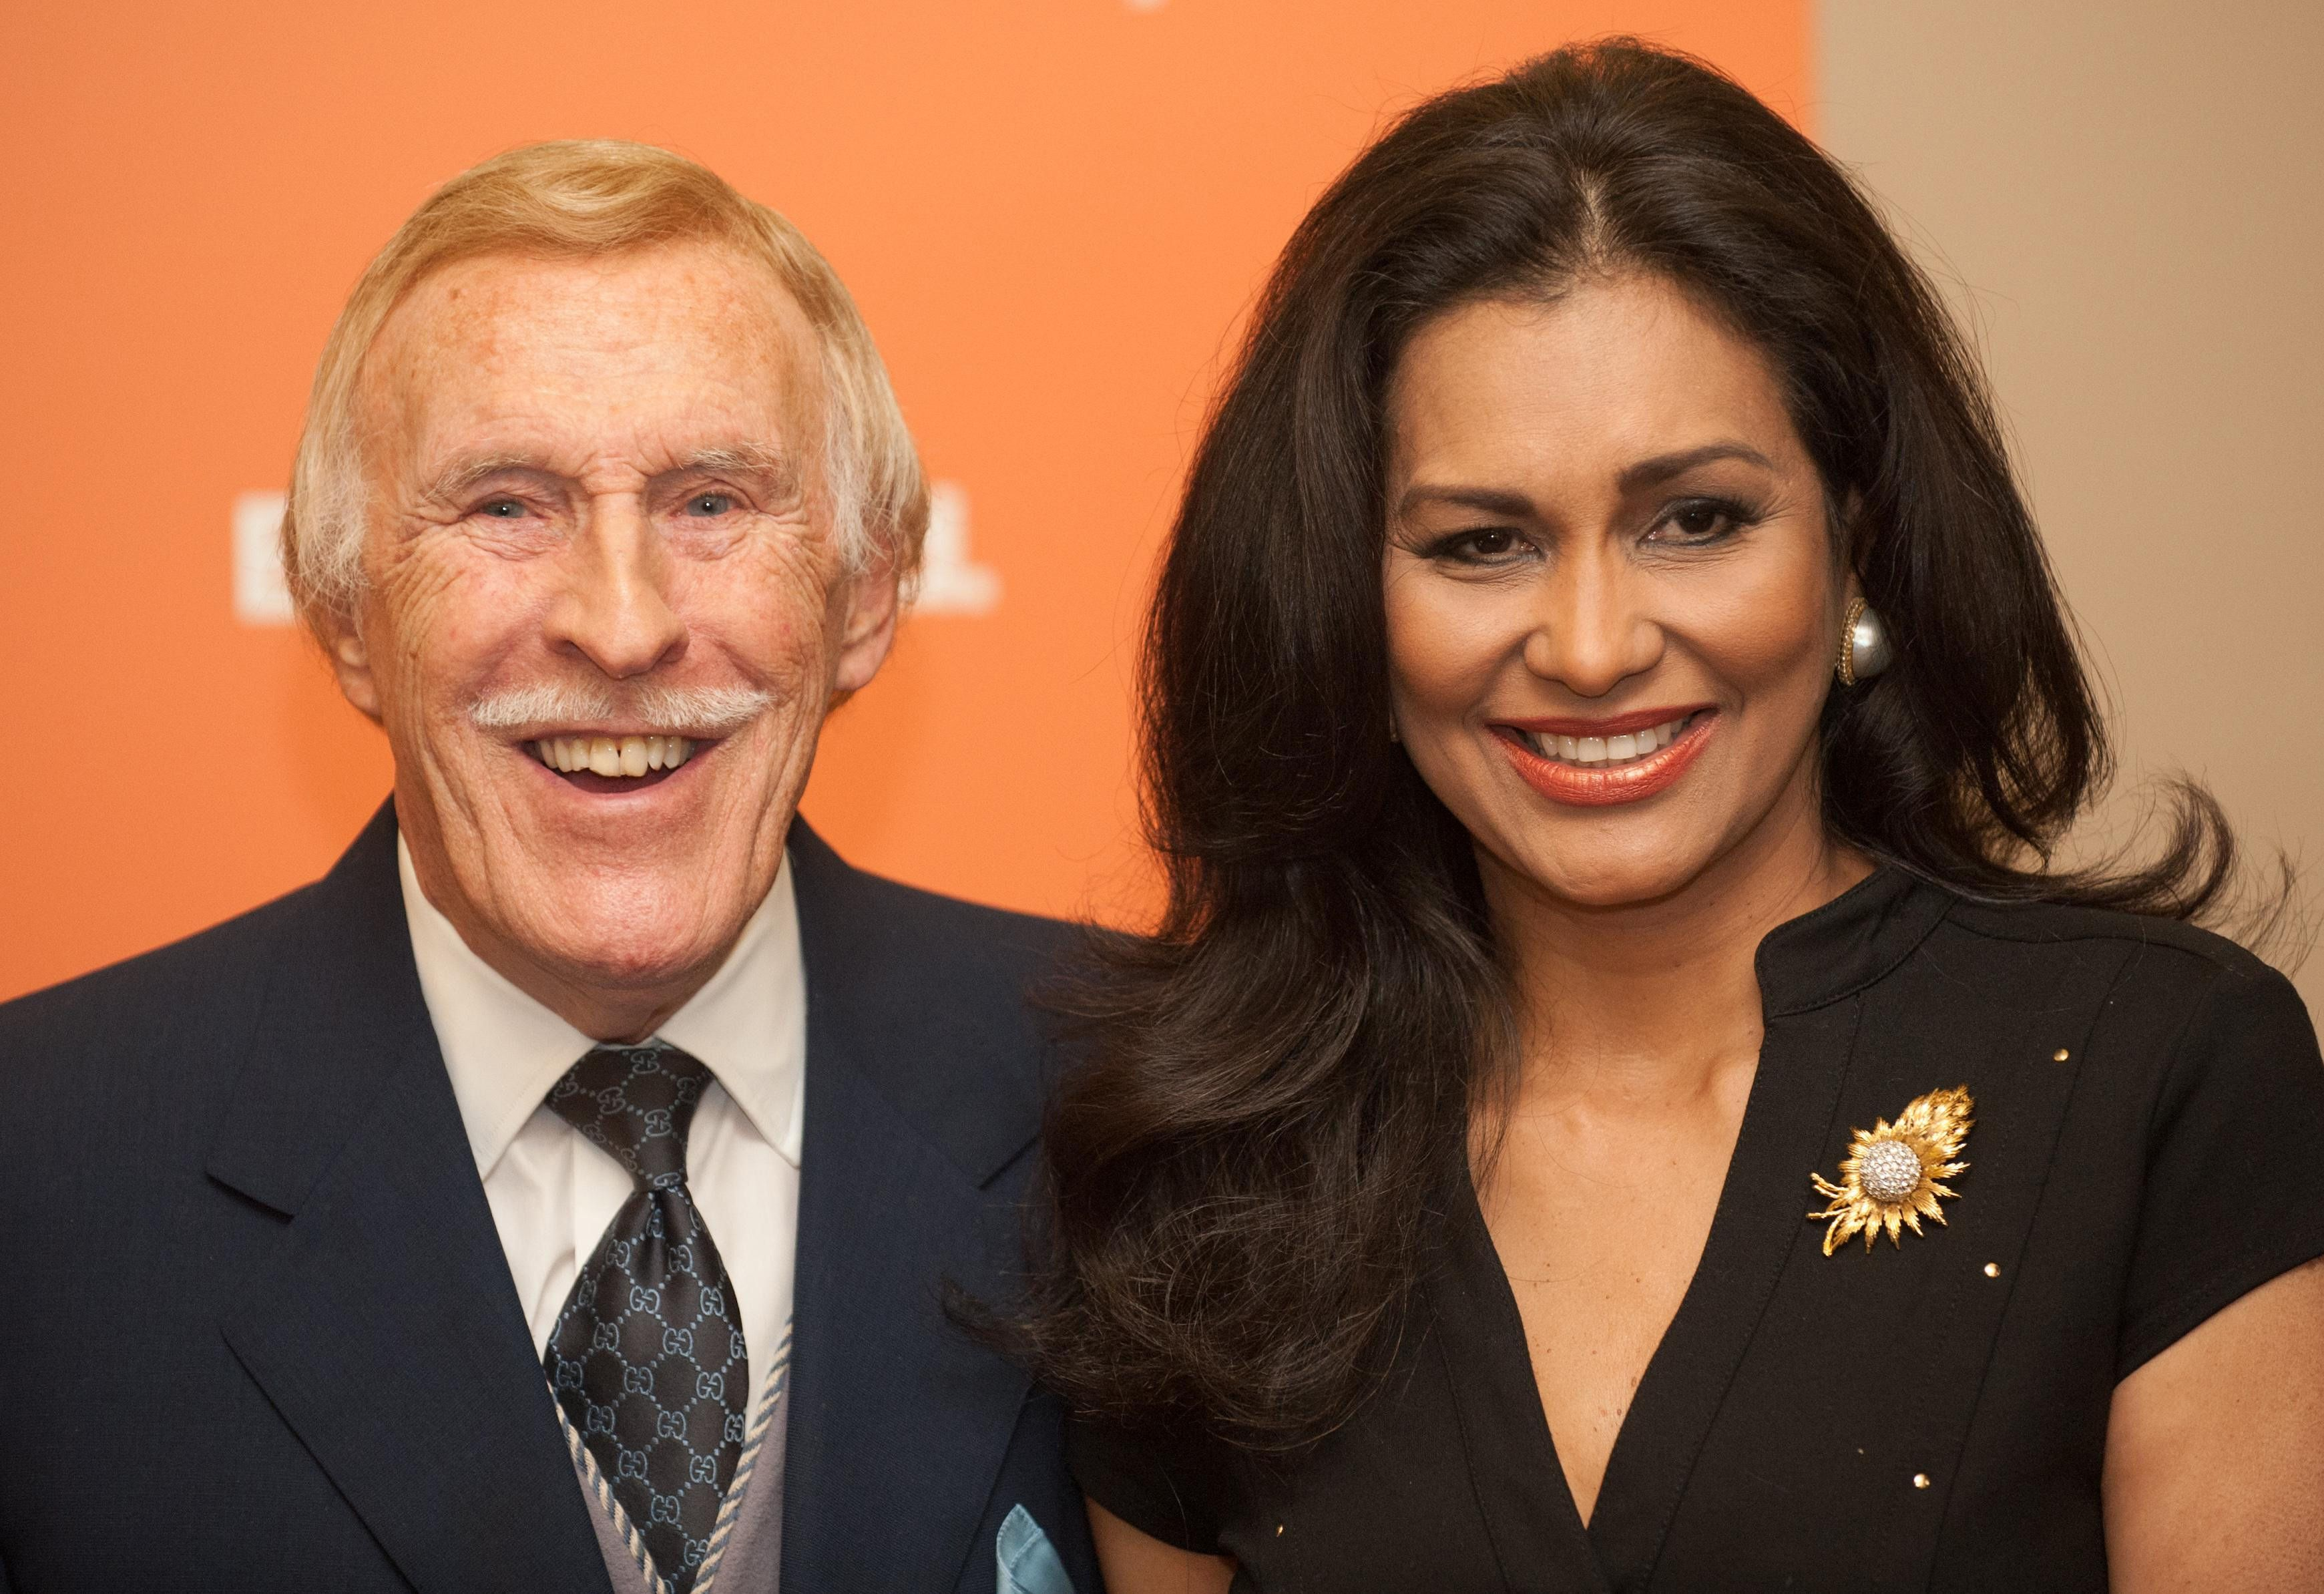 Bruce Forsyth's Family 'Heartbroken' Over His Death, As They Thank Fans For Support In New